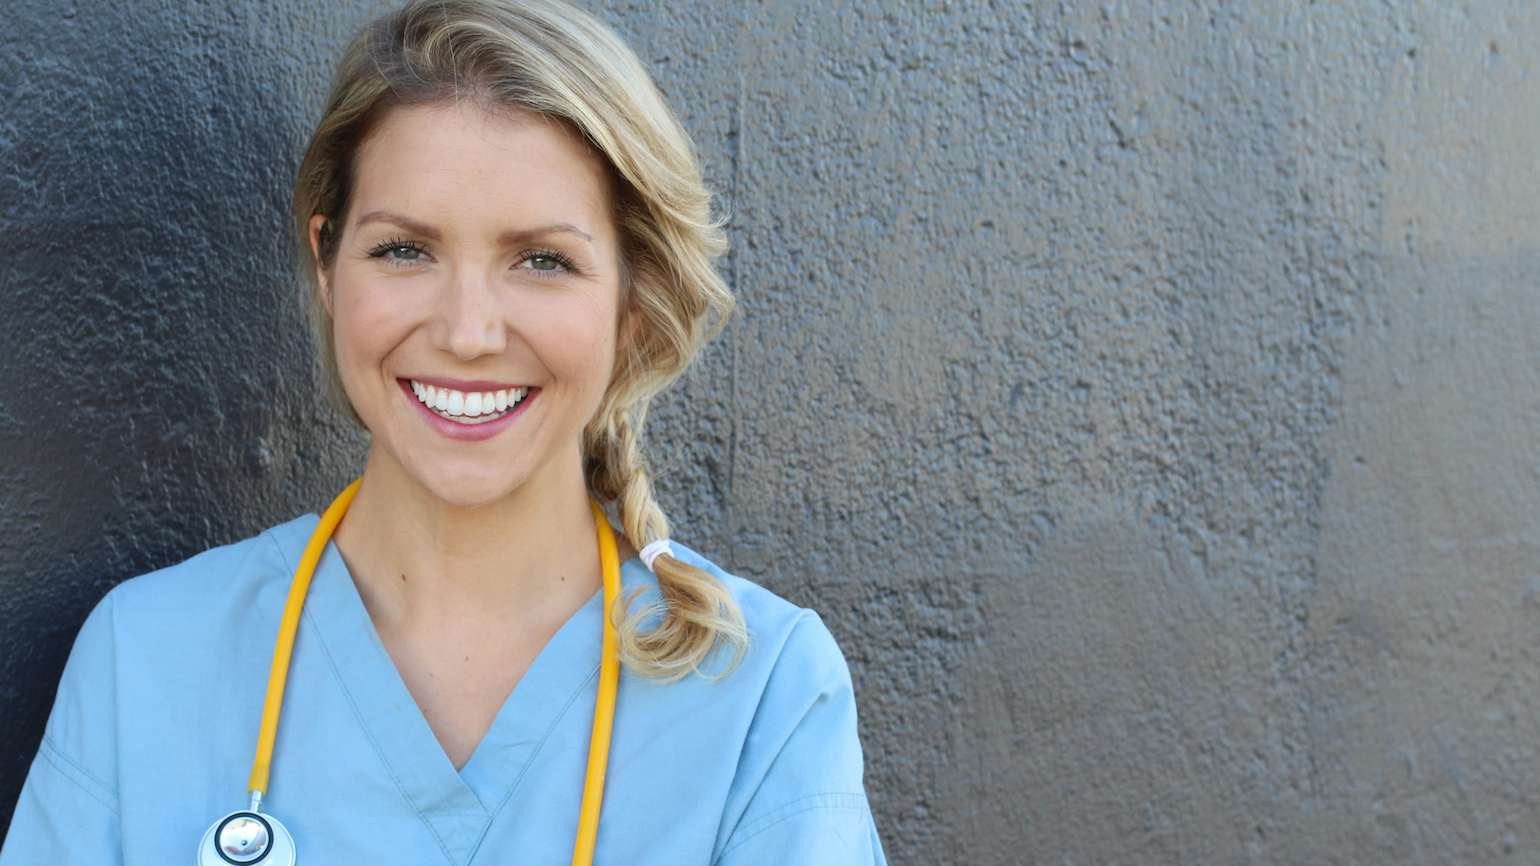 Nurses who make a difference